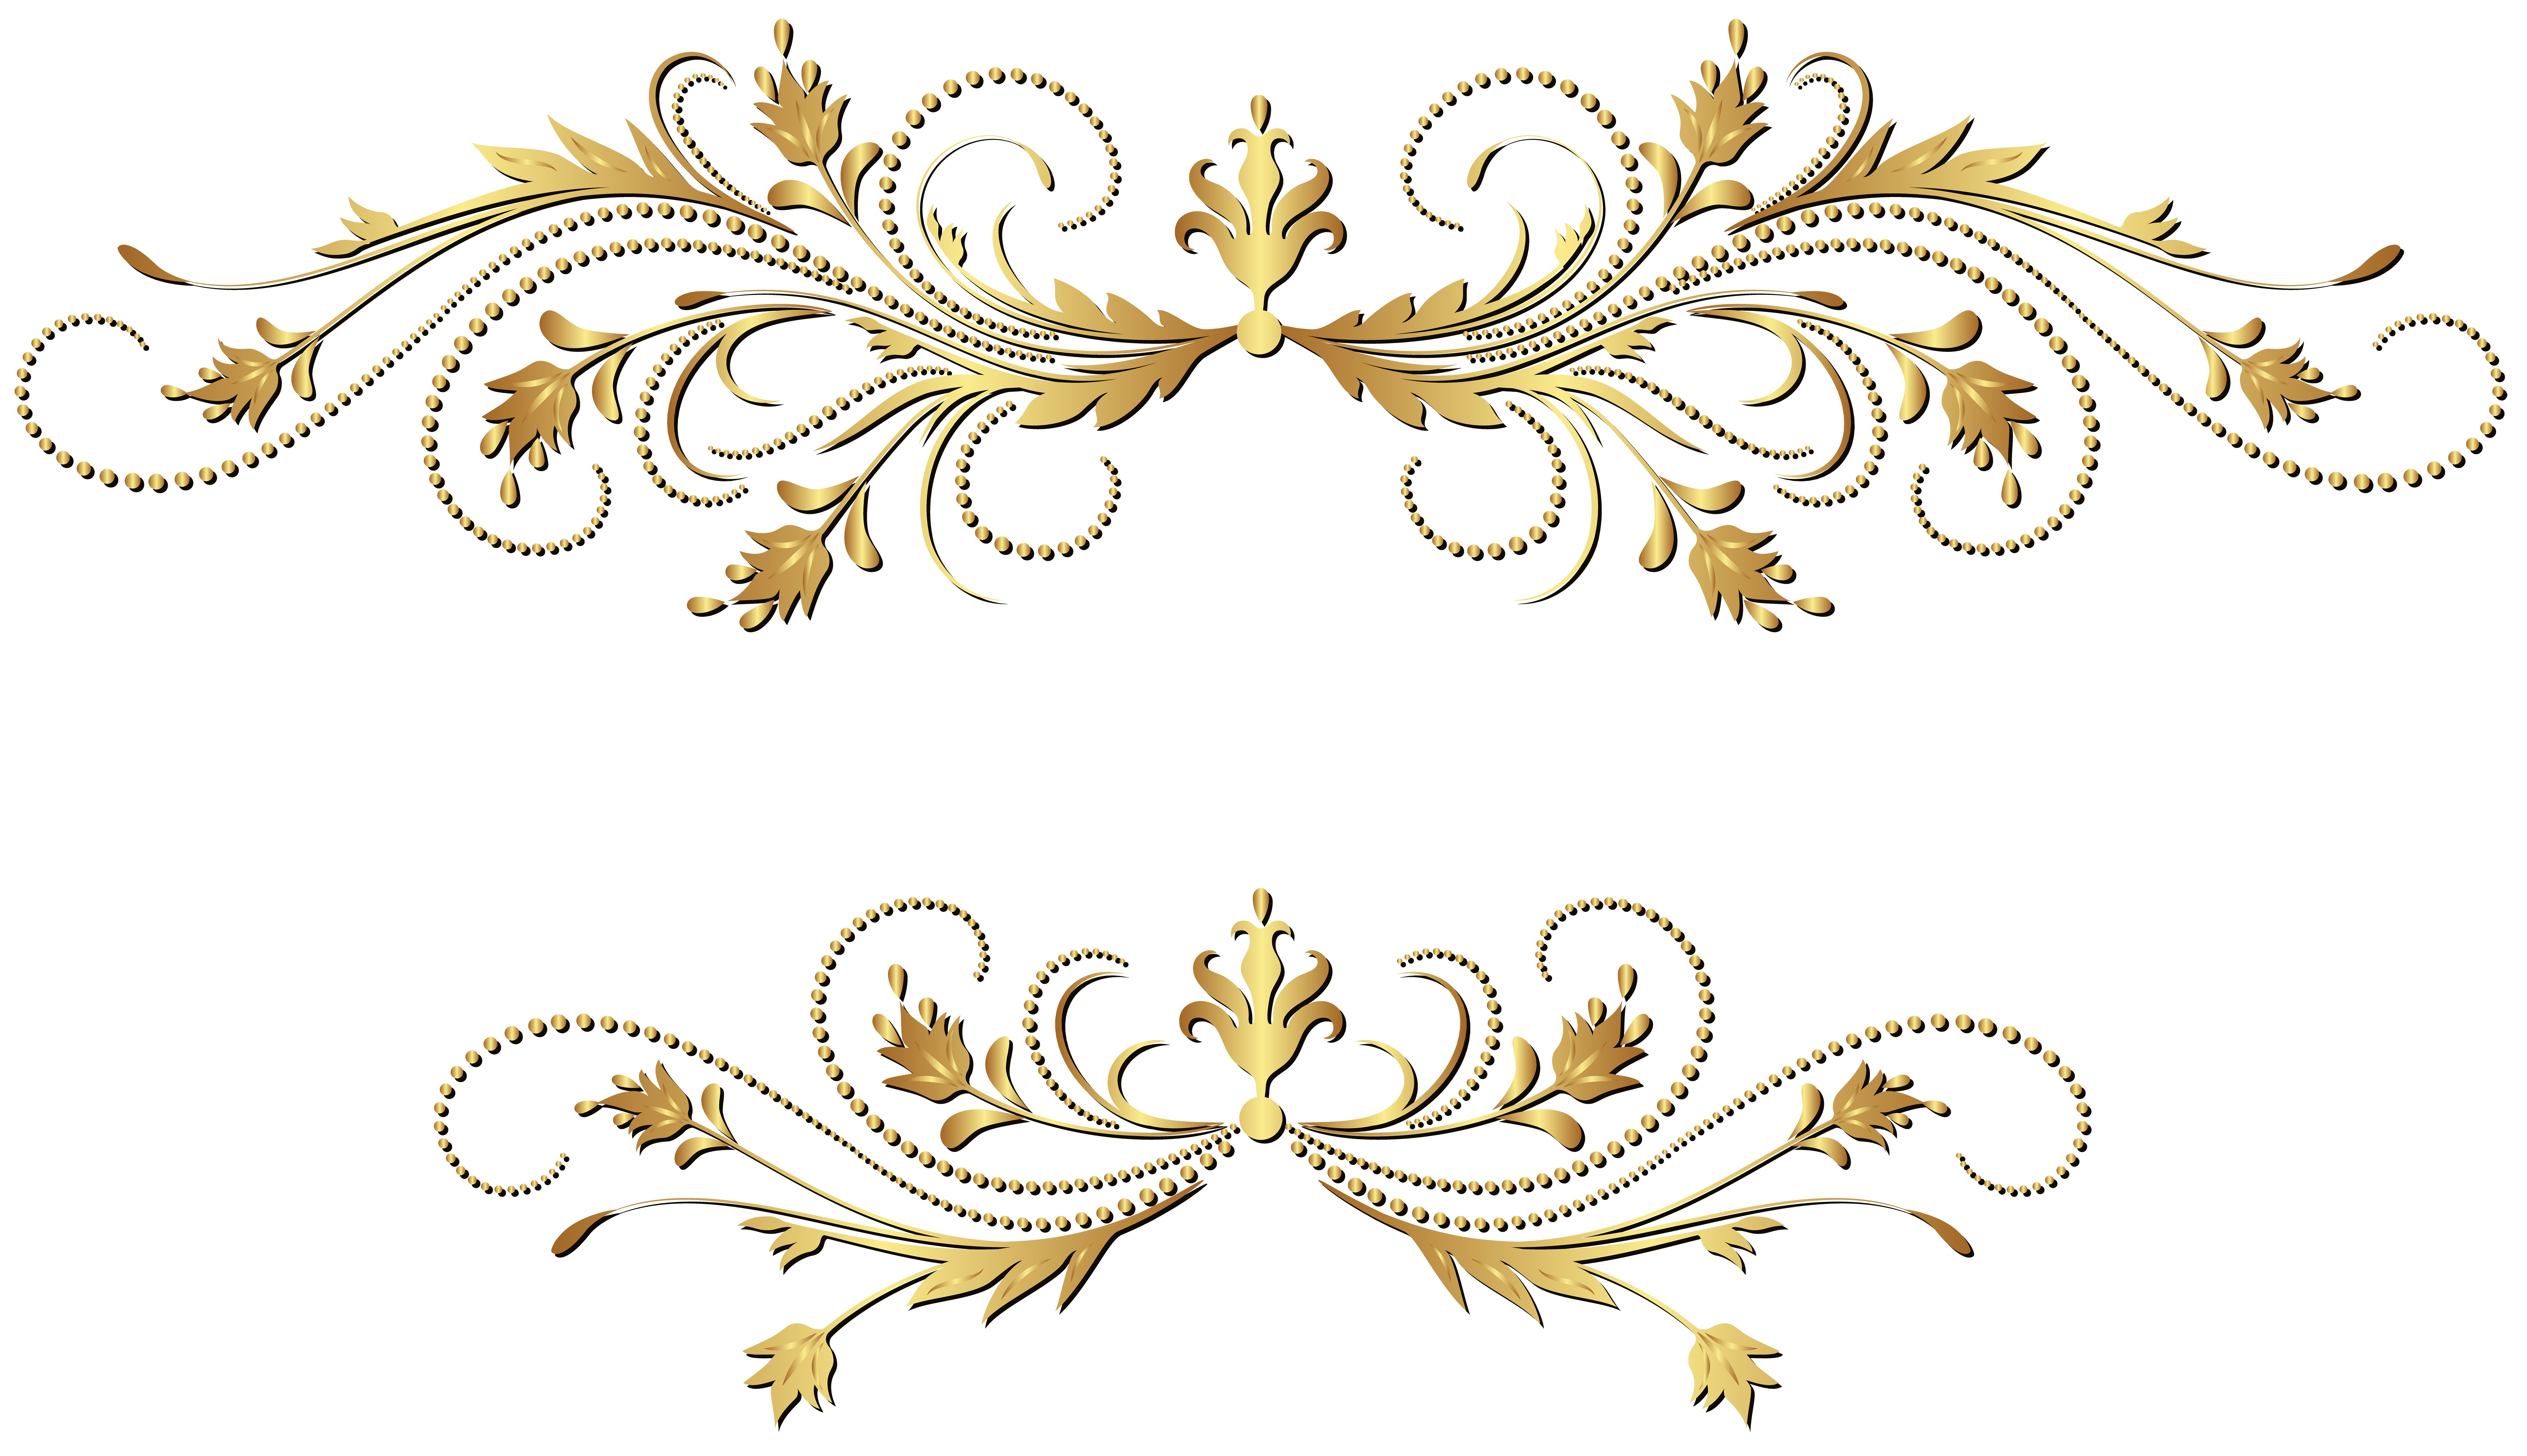 Decorative clipart decorative element. Elements png clip art